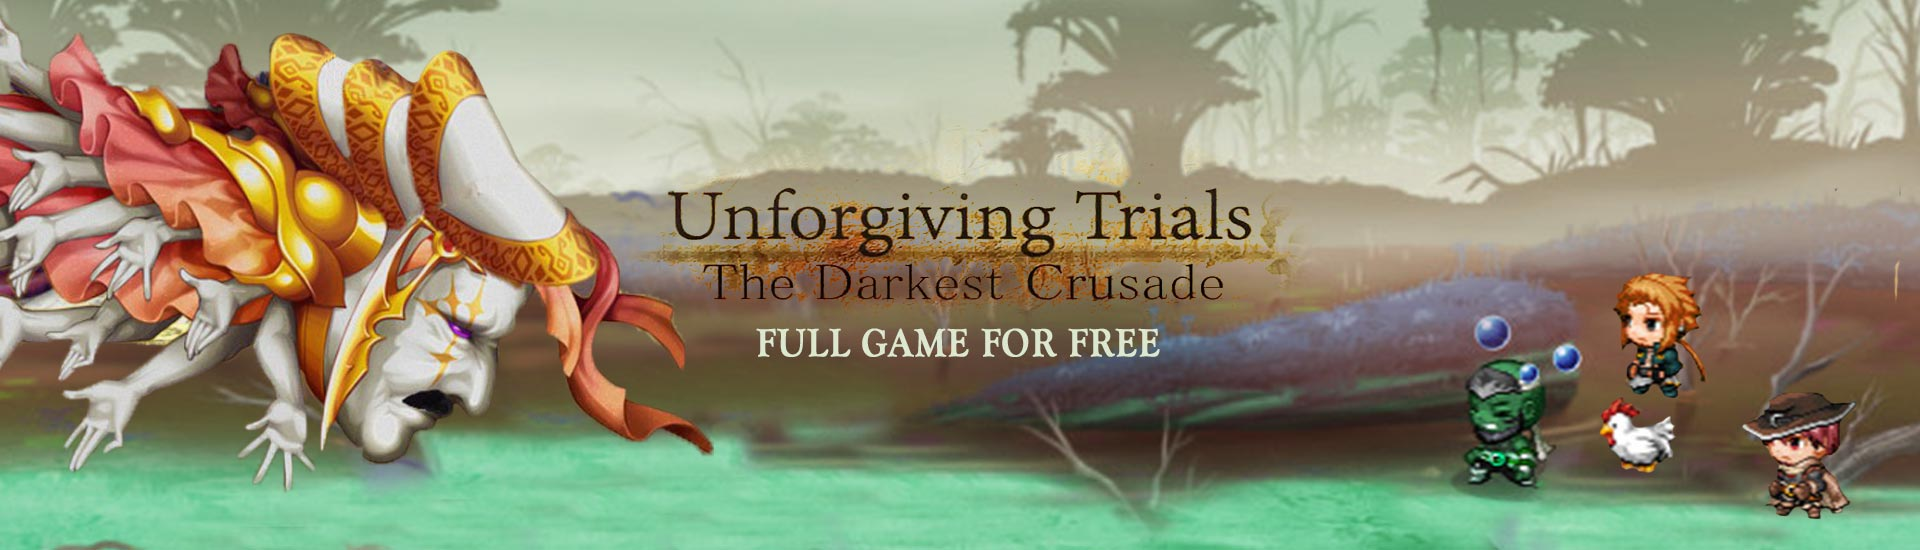 Unforgiving Trials: The Darkest Crusade cover